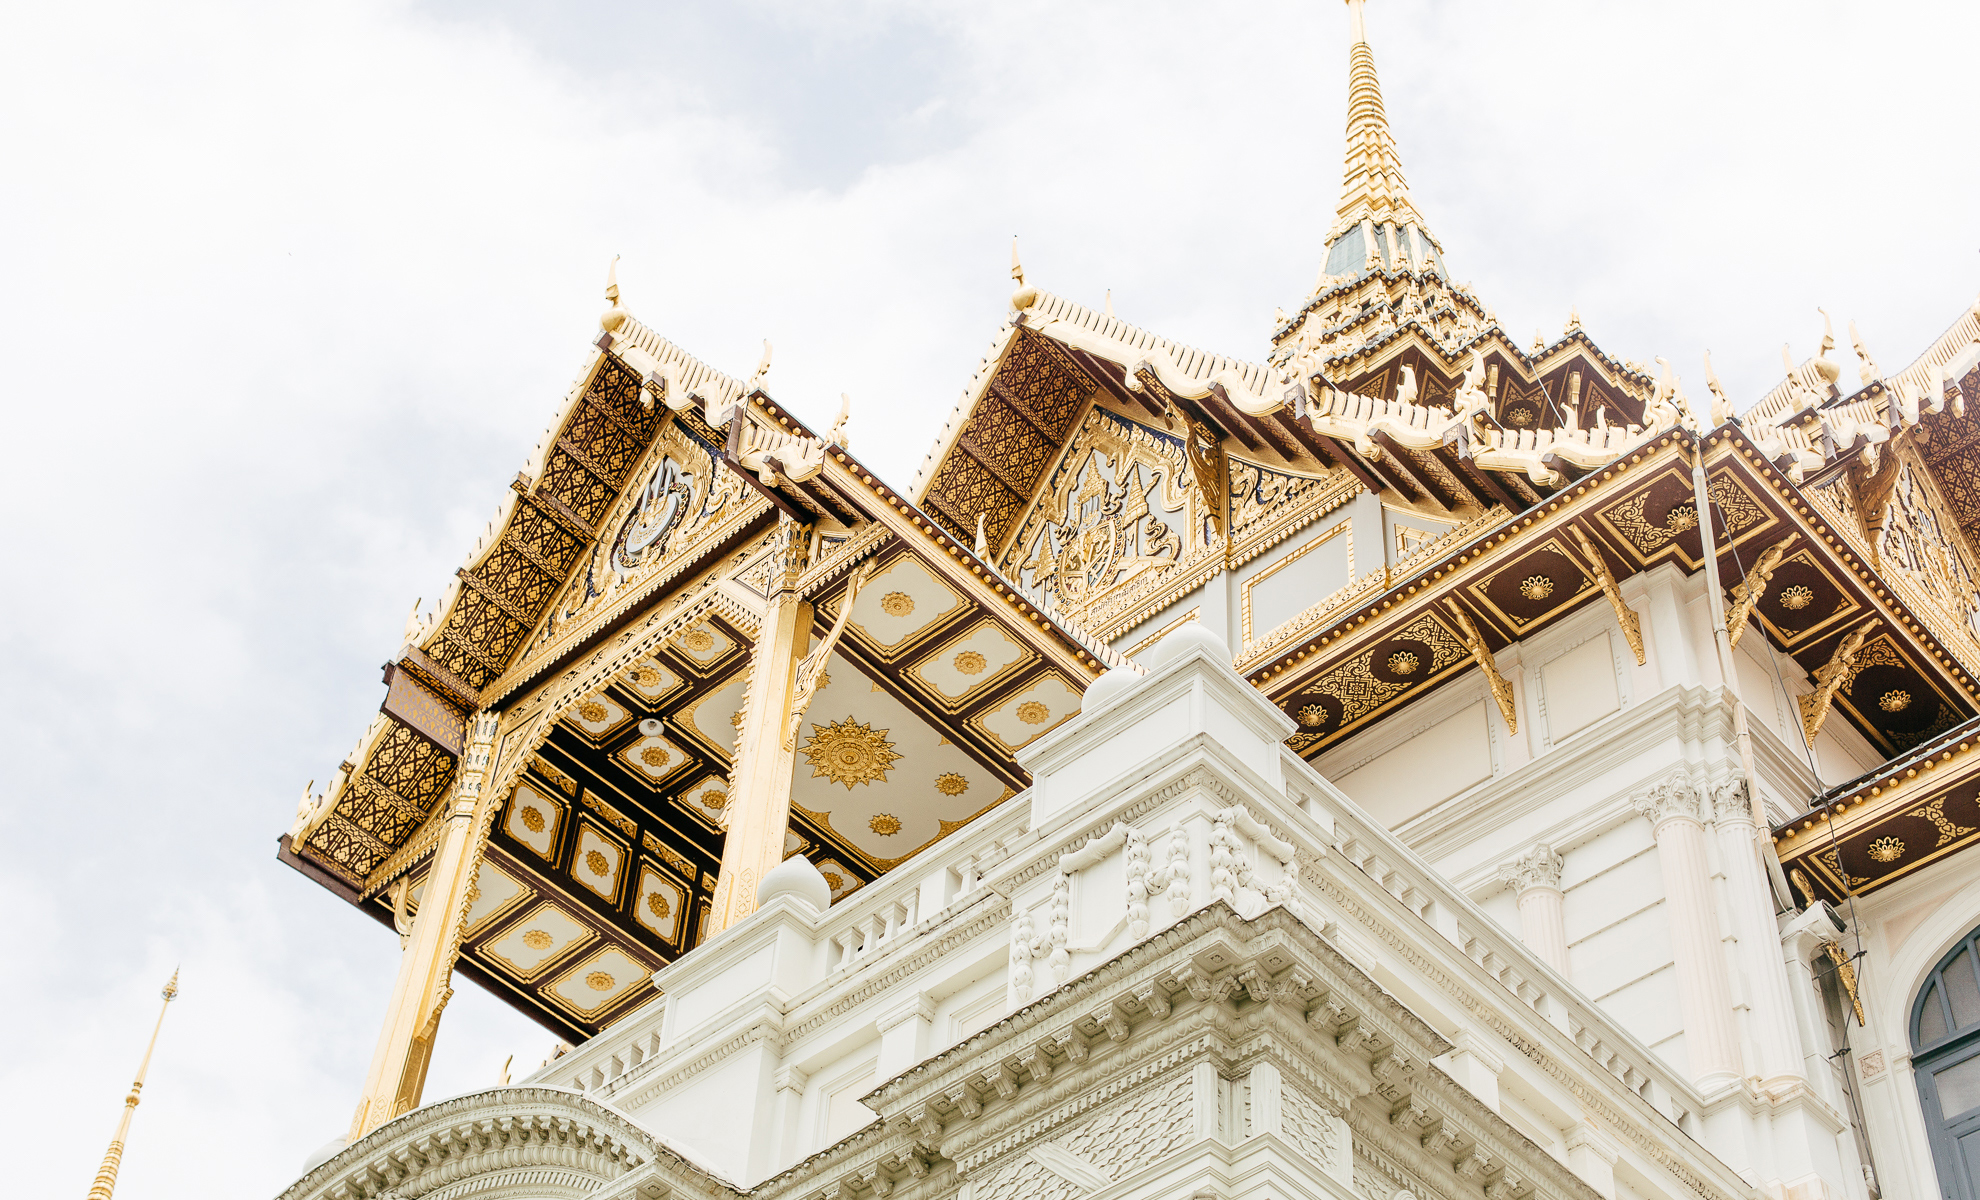 A highly ornate building, white and gold